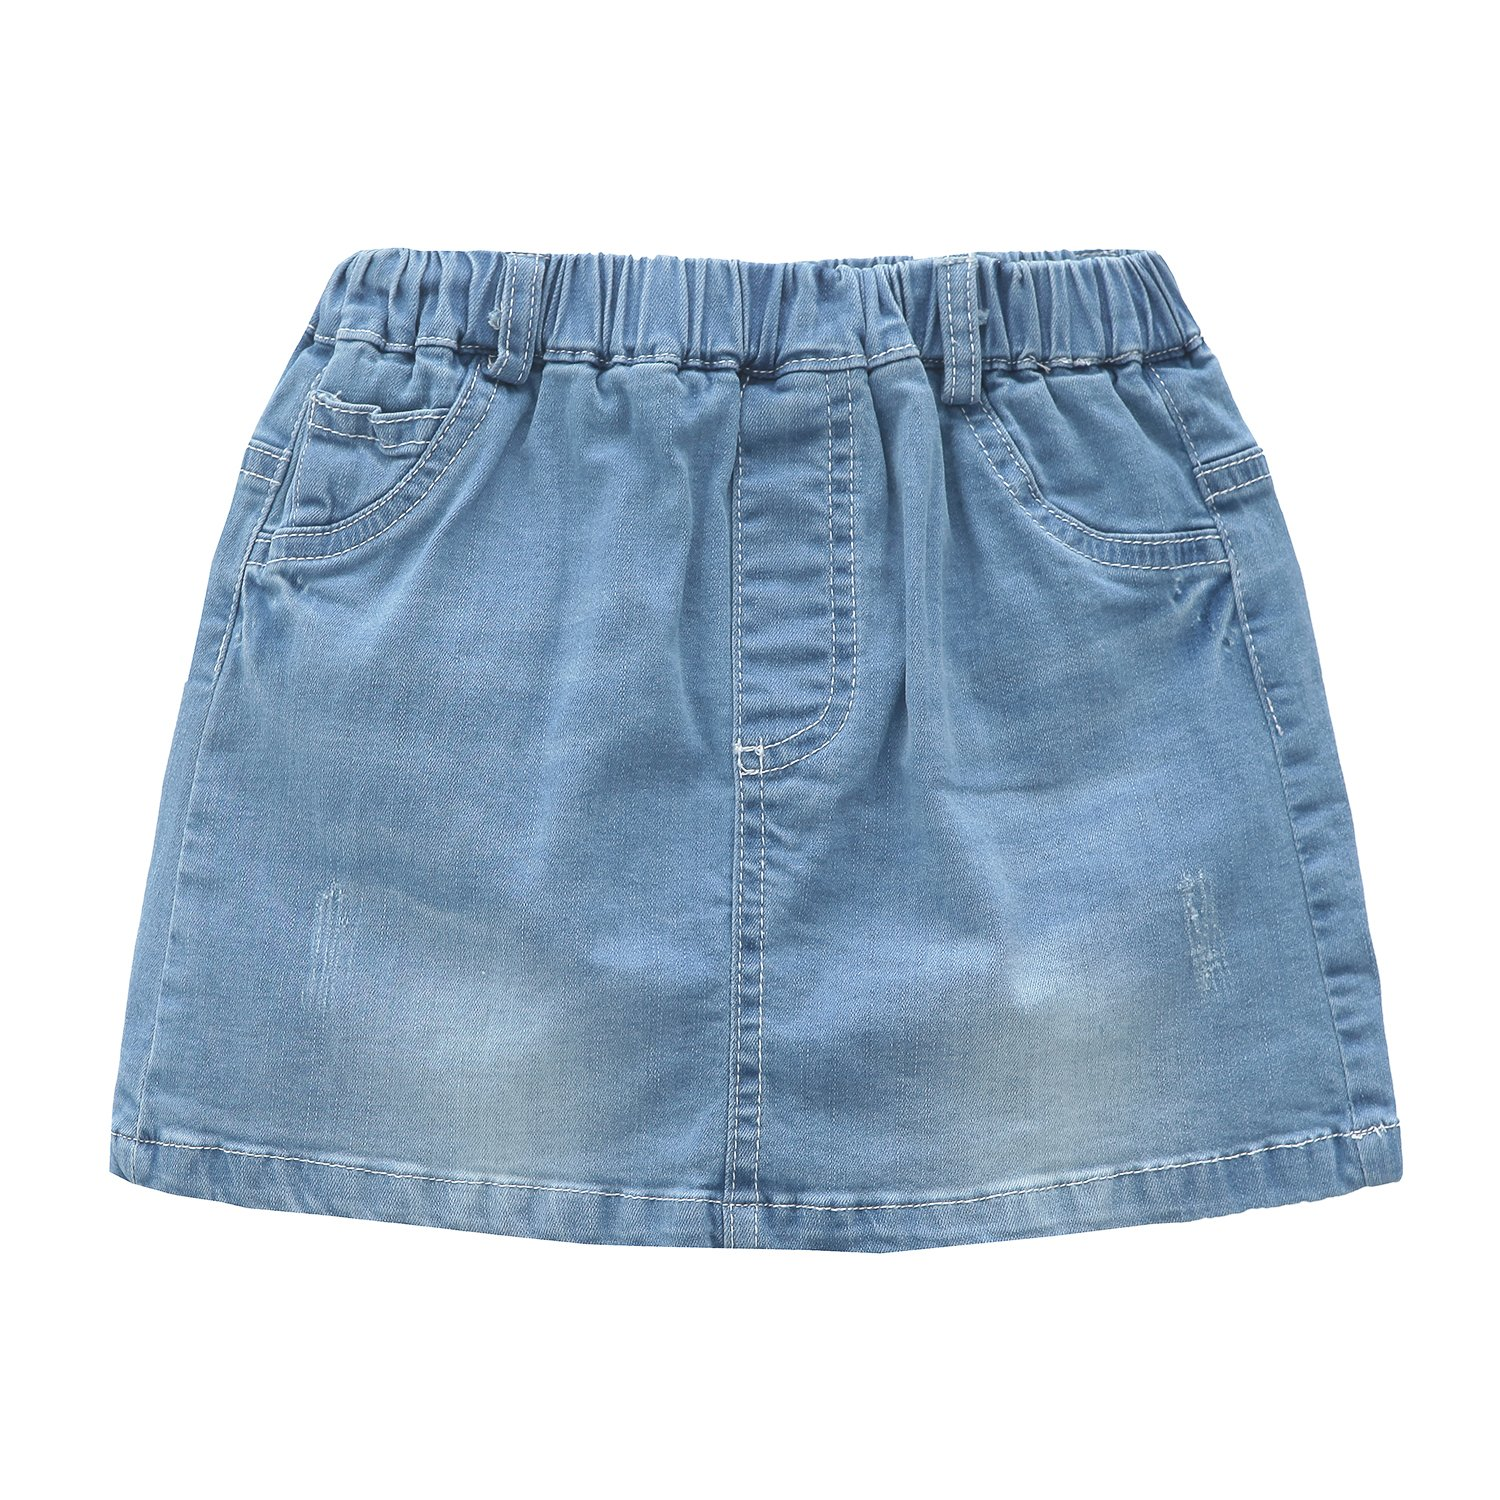 Grandwish Little Girls Solid Color Denim Skort 7